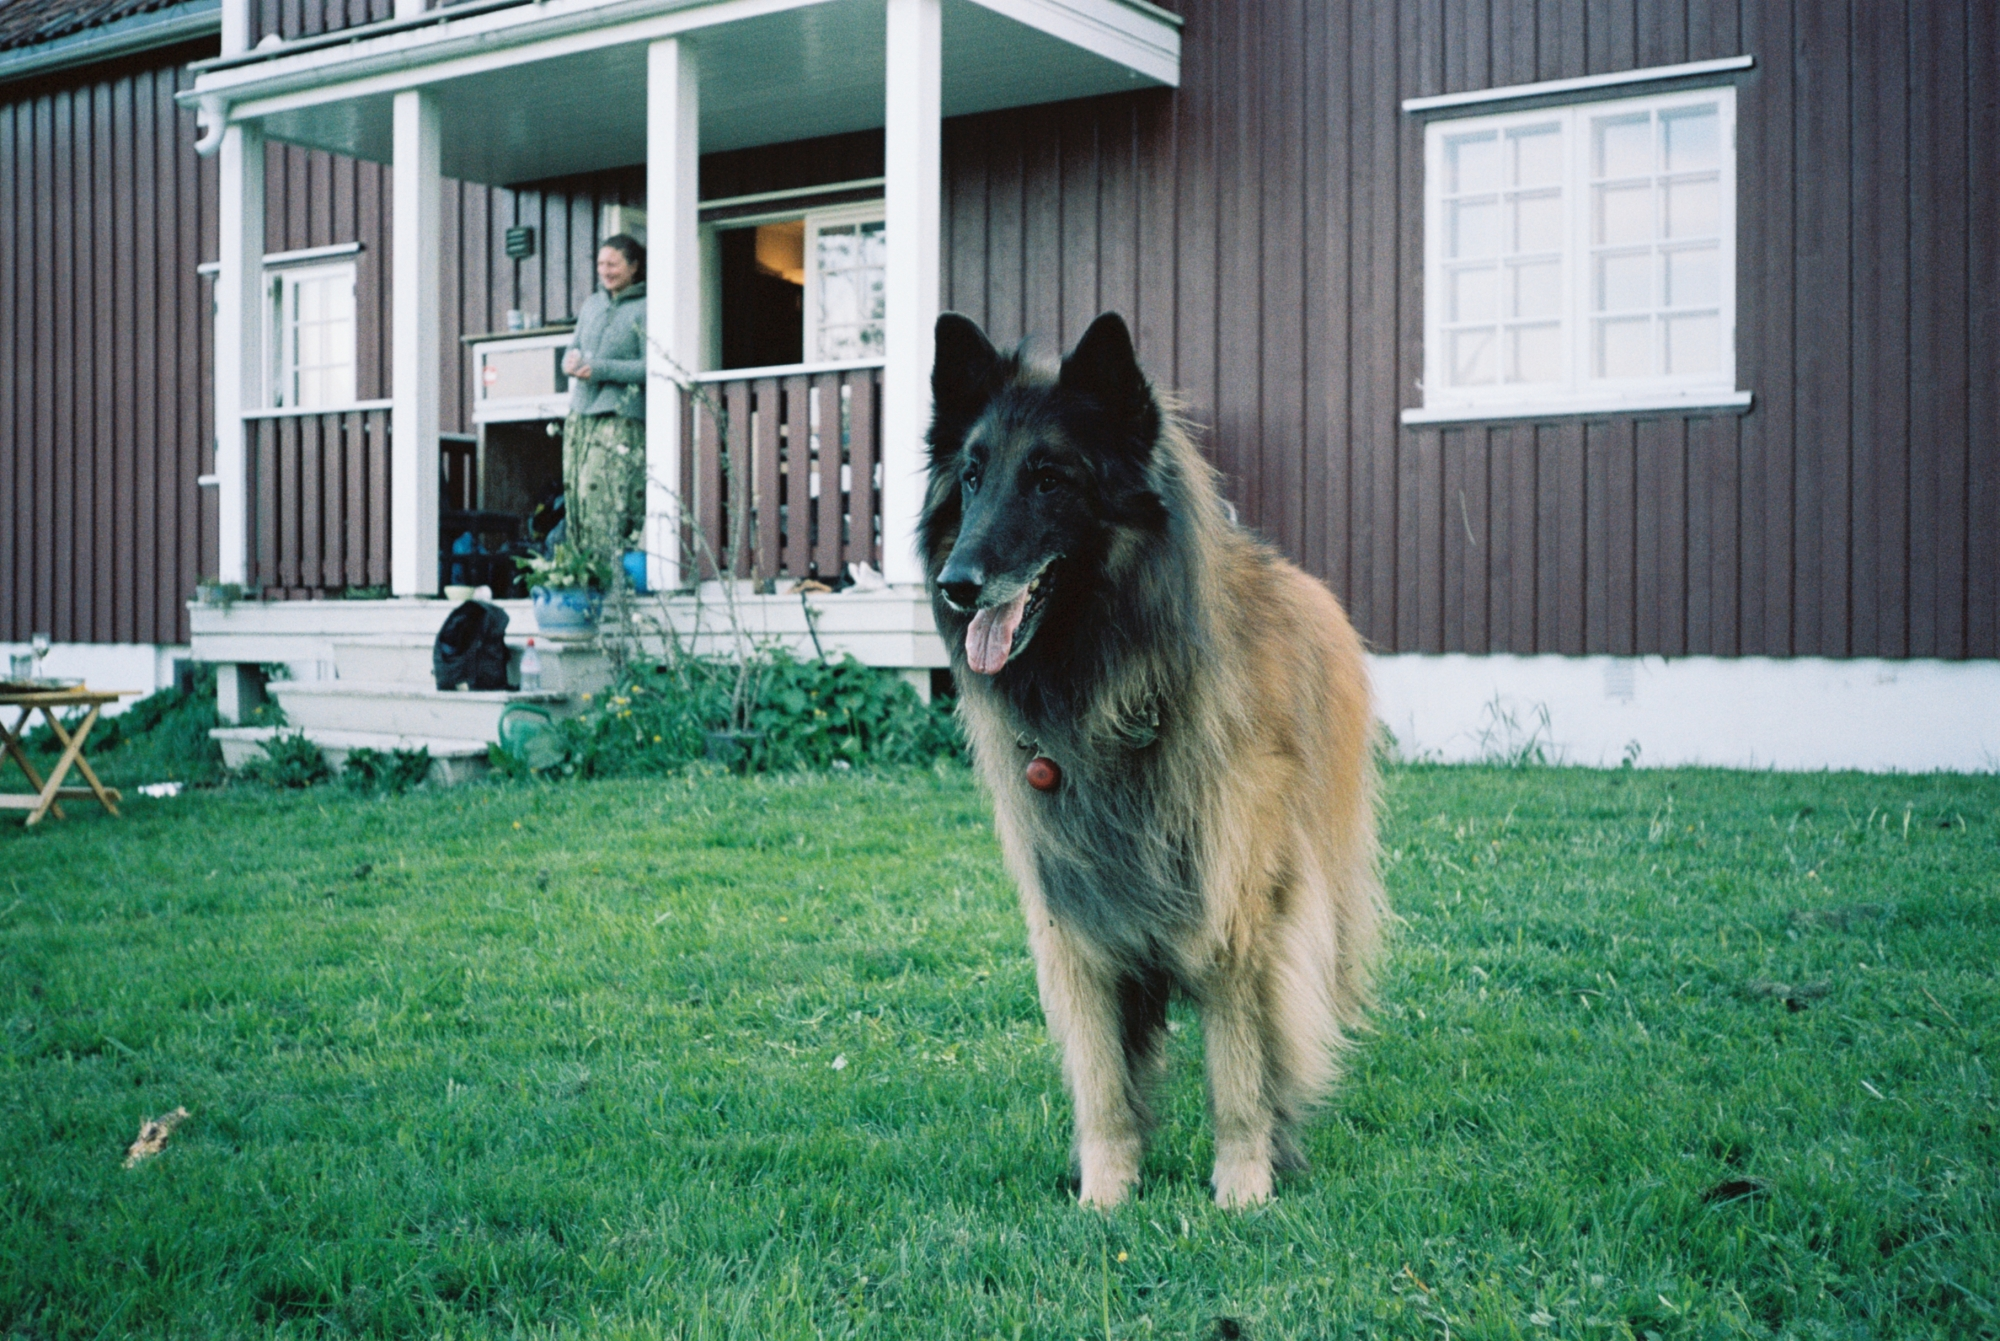 A dog stands in front of a wooden house. It's a big dog. Looks more like a wolf.